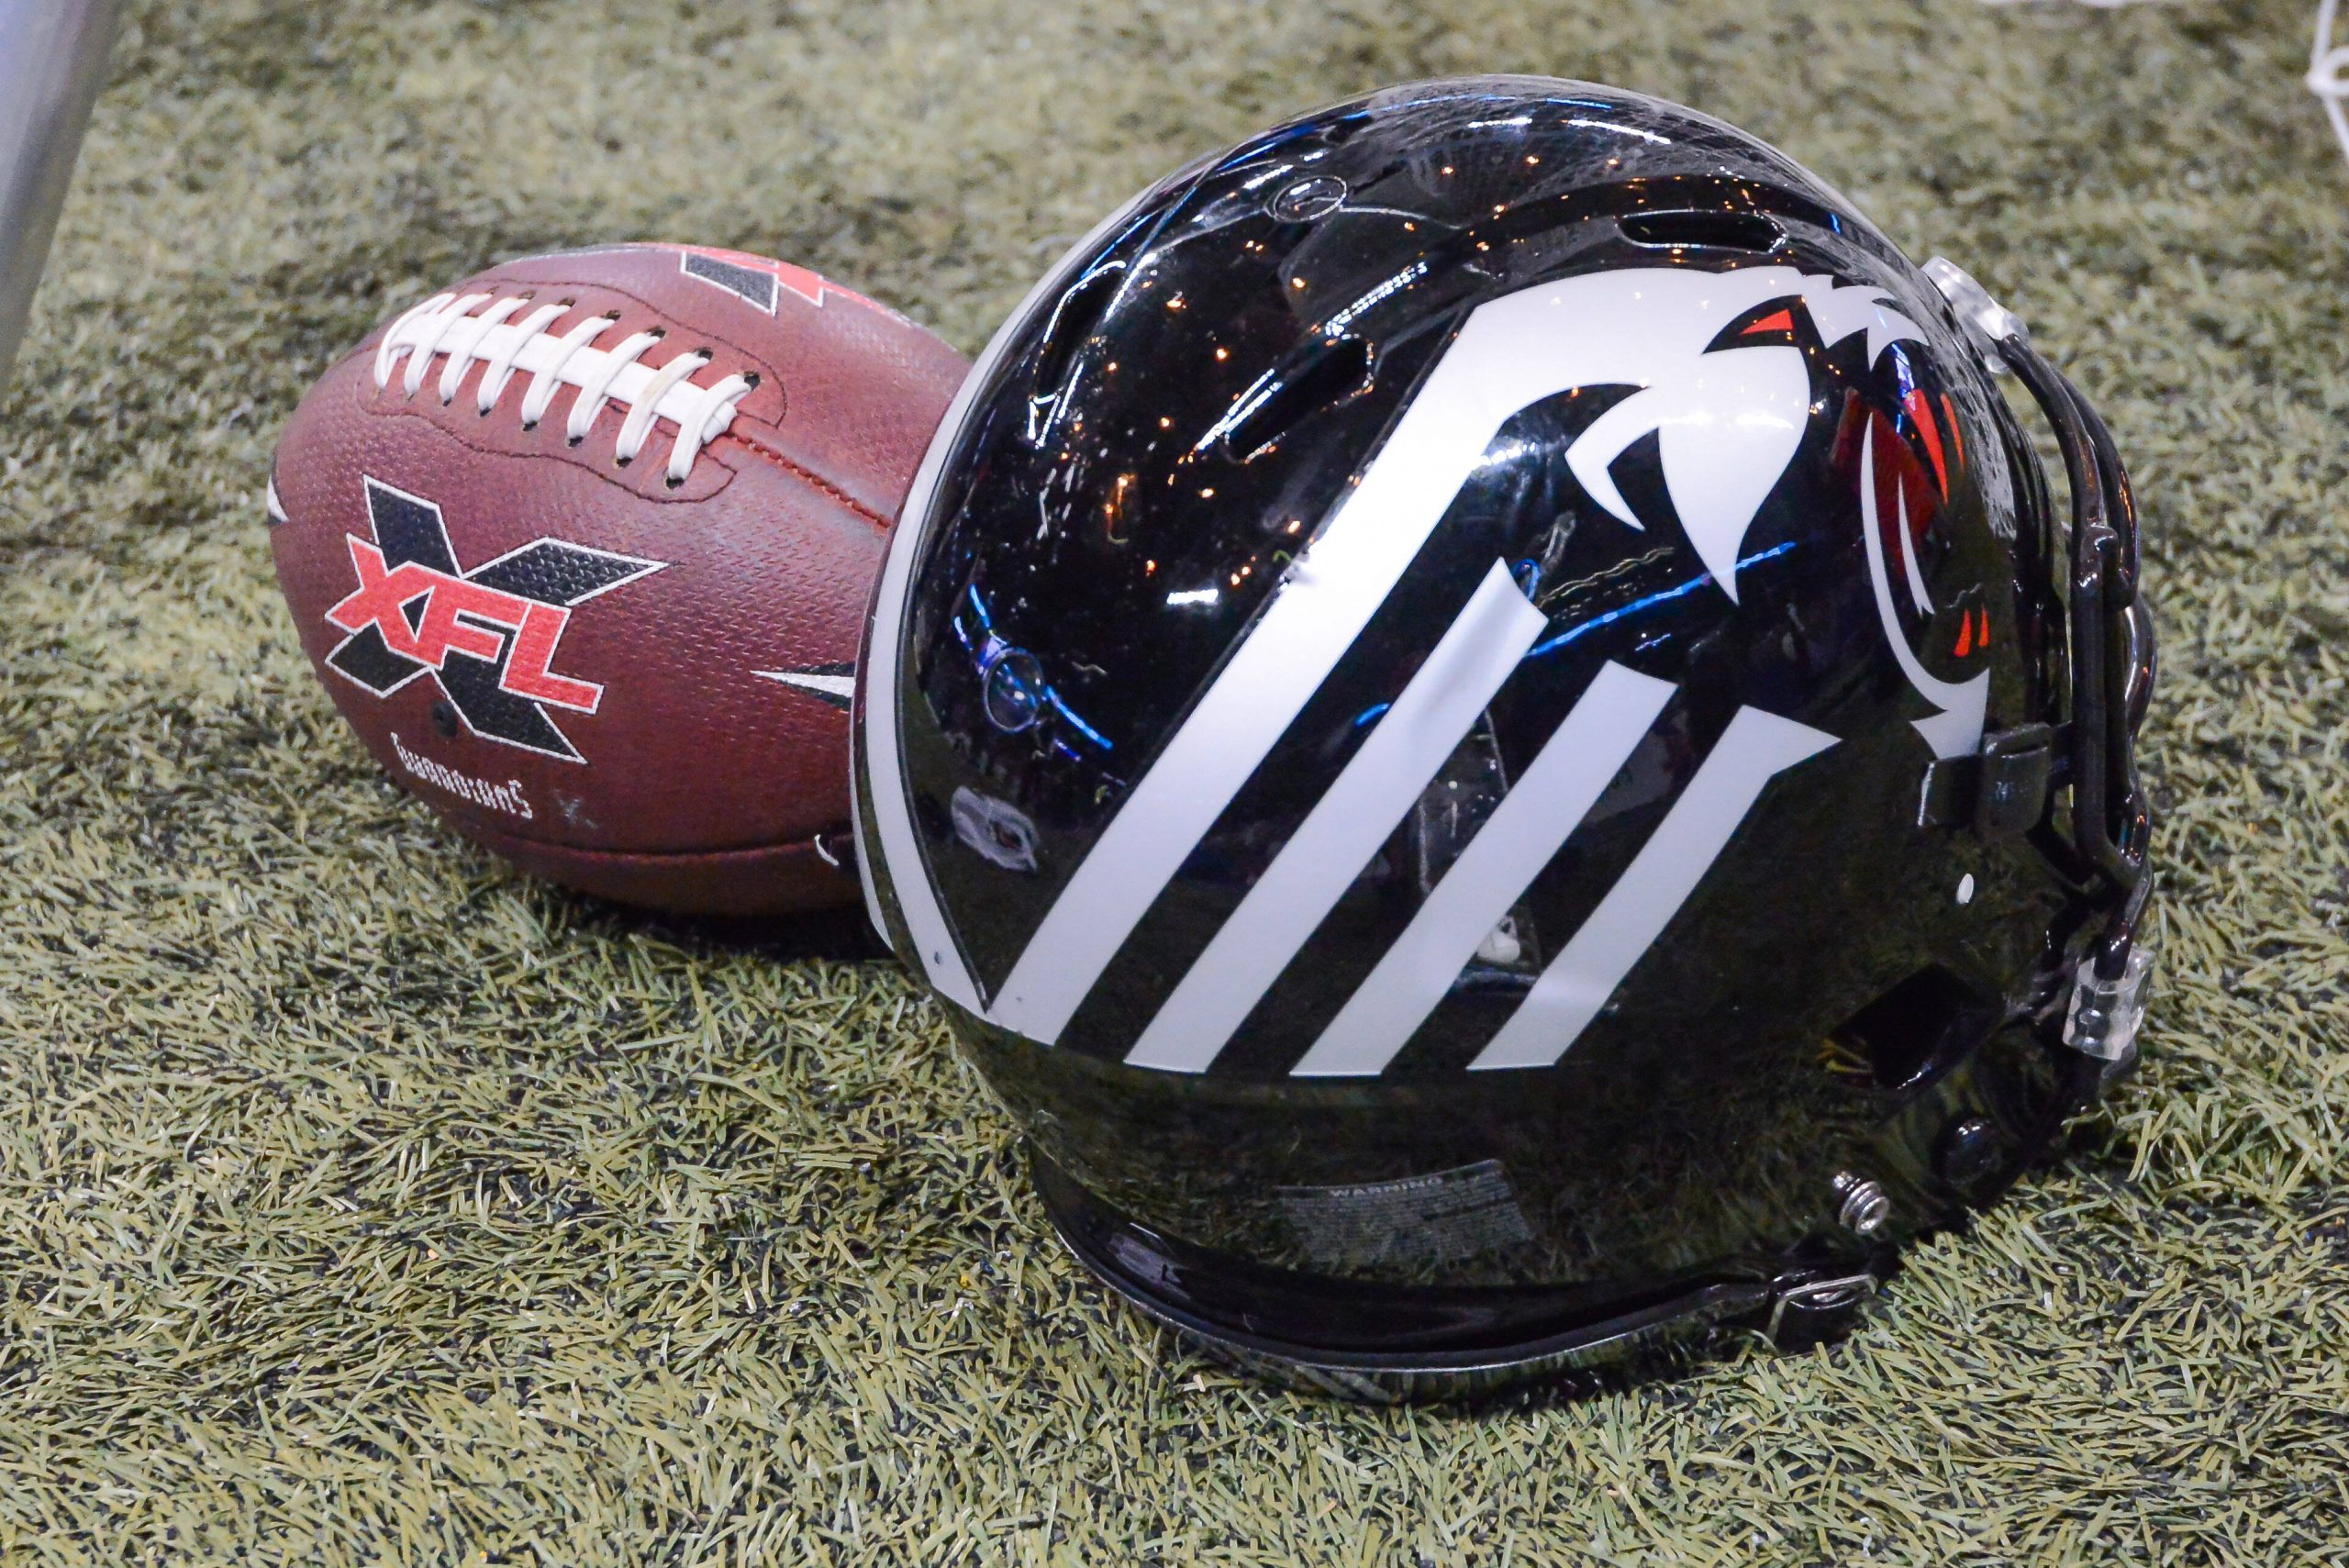 Feb 23, 2020: A New York helmet sits next to a XFL game ball in a game where the NY Guardians visit